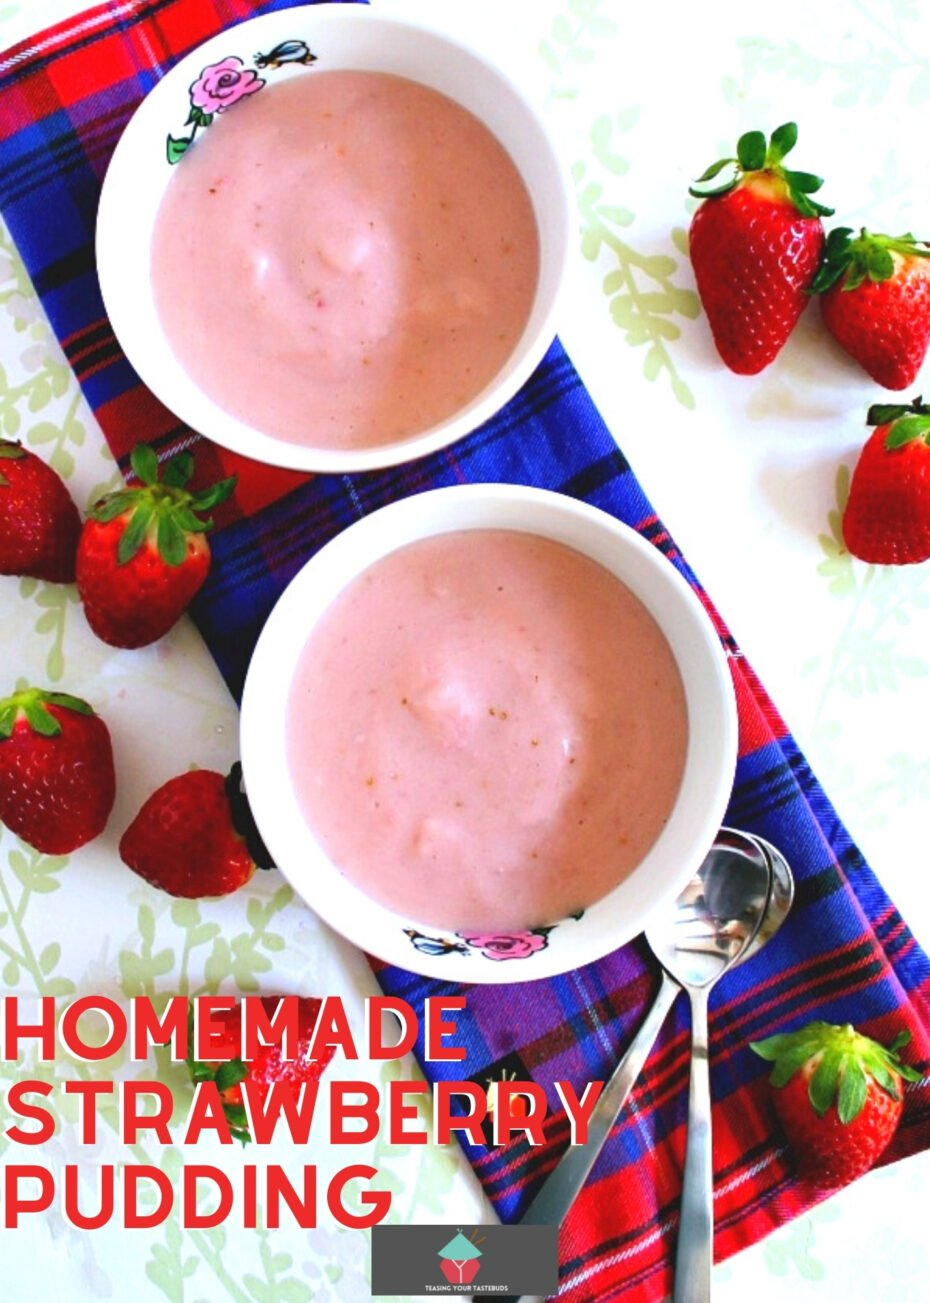 Homemade Strawberry Pudding is so delicious! Made from scratch using fresh ingredients and no additives or artificial coloring. Makes for a great dessert hot or cold.